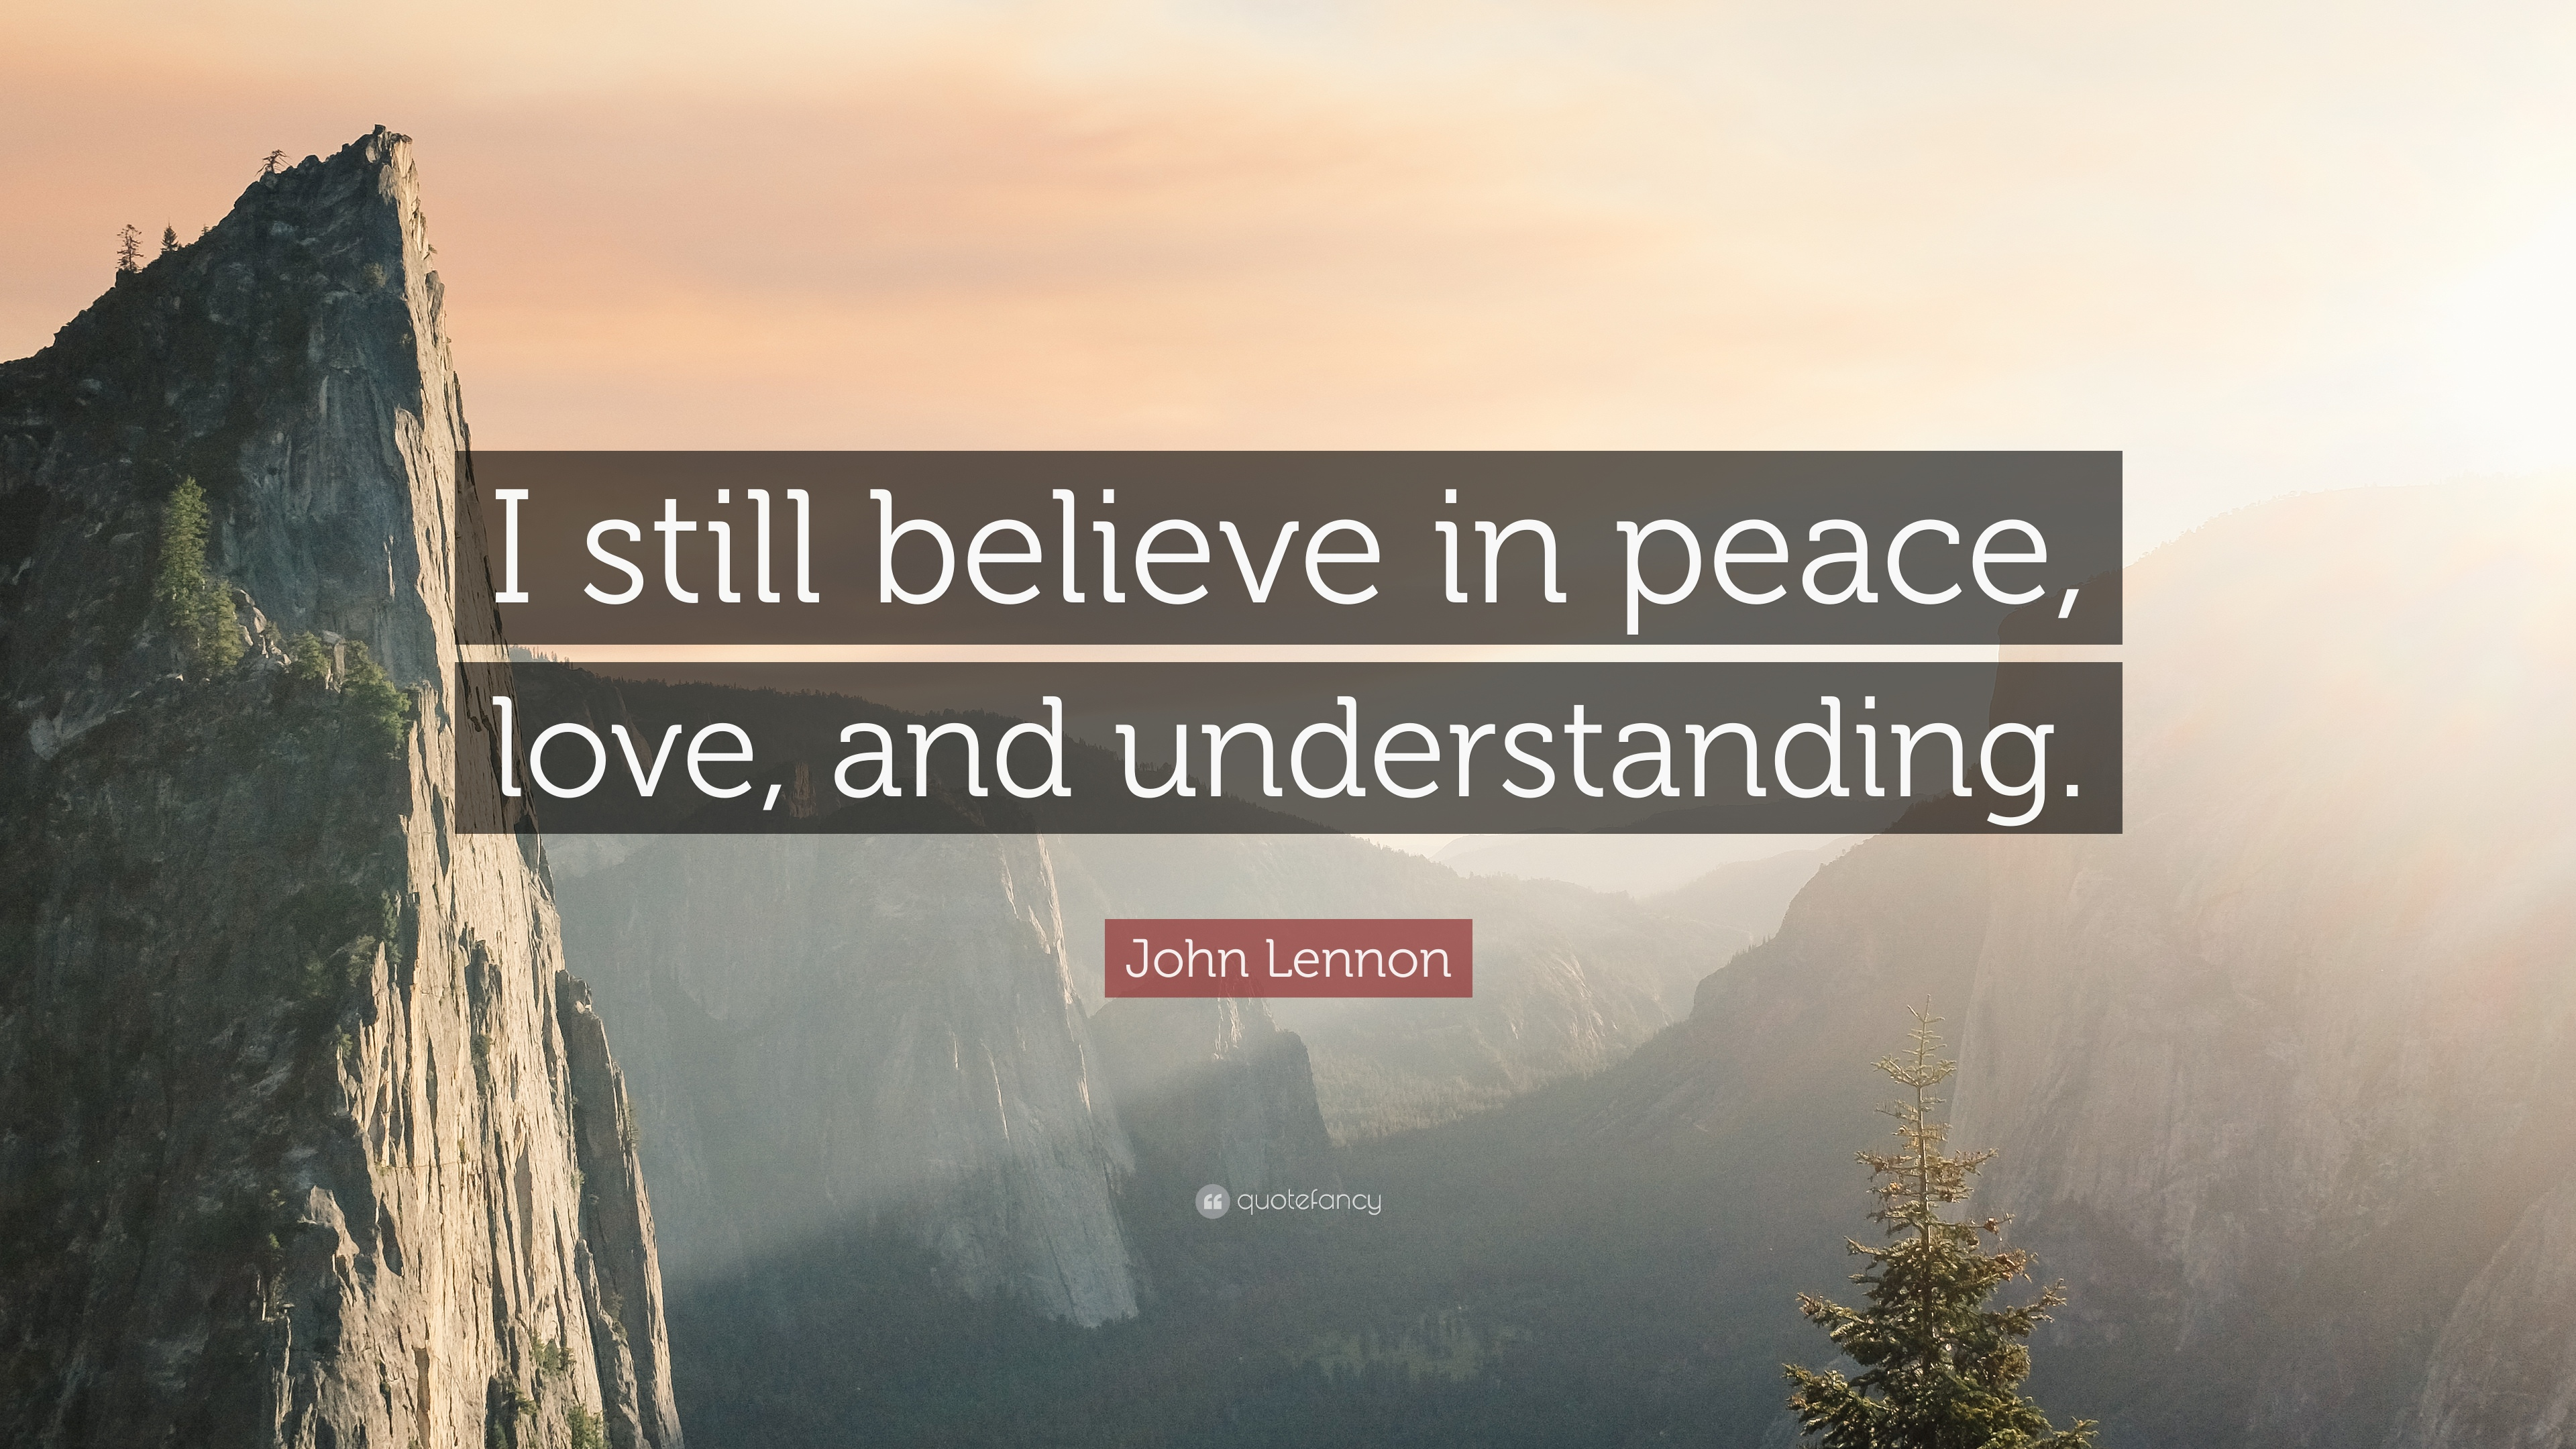 John Lennon Quotes (100 wallpapers) - Quotefancy